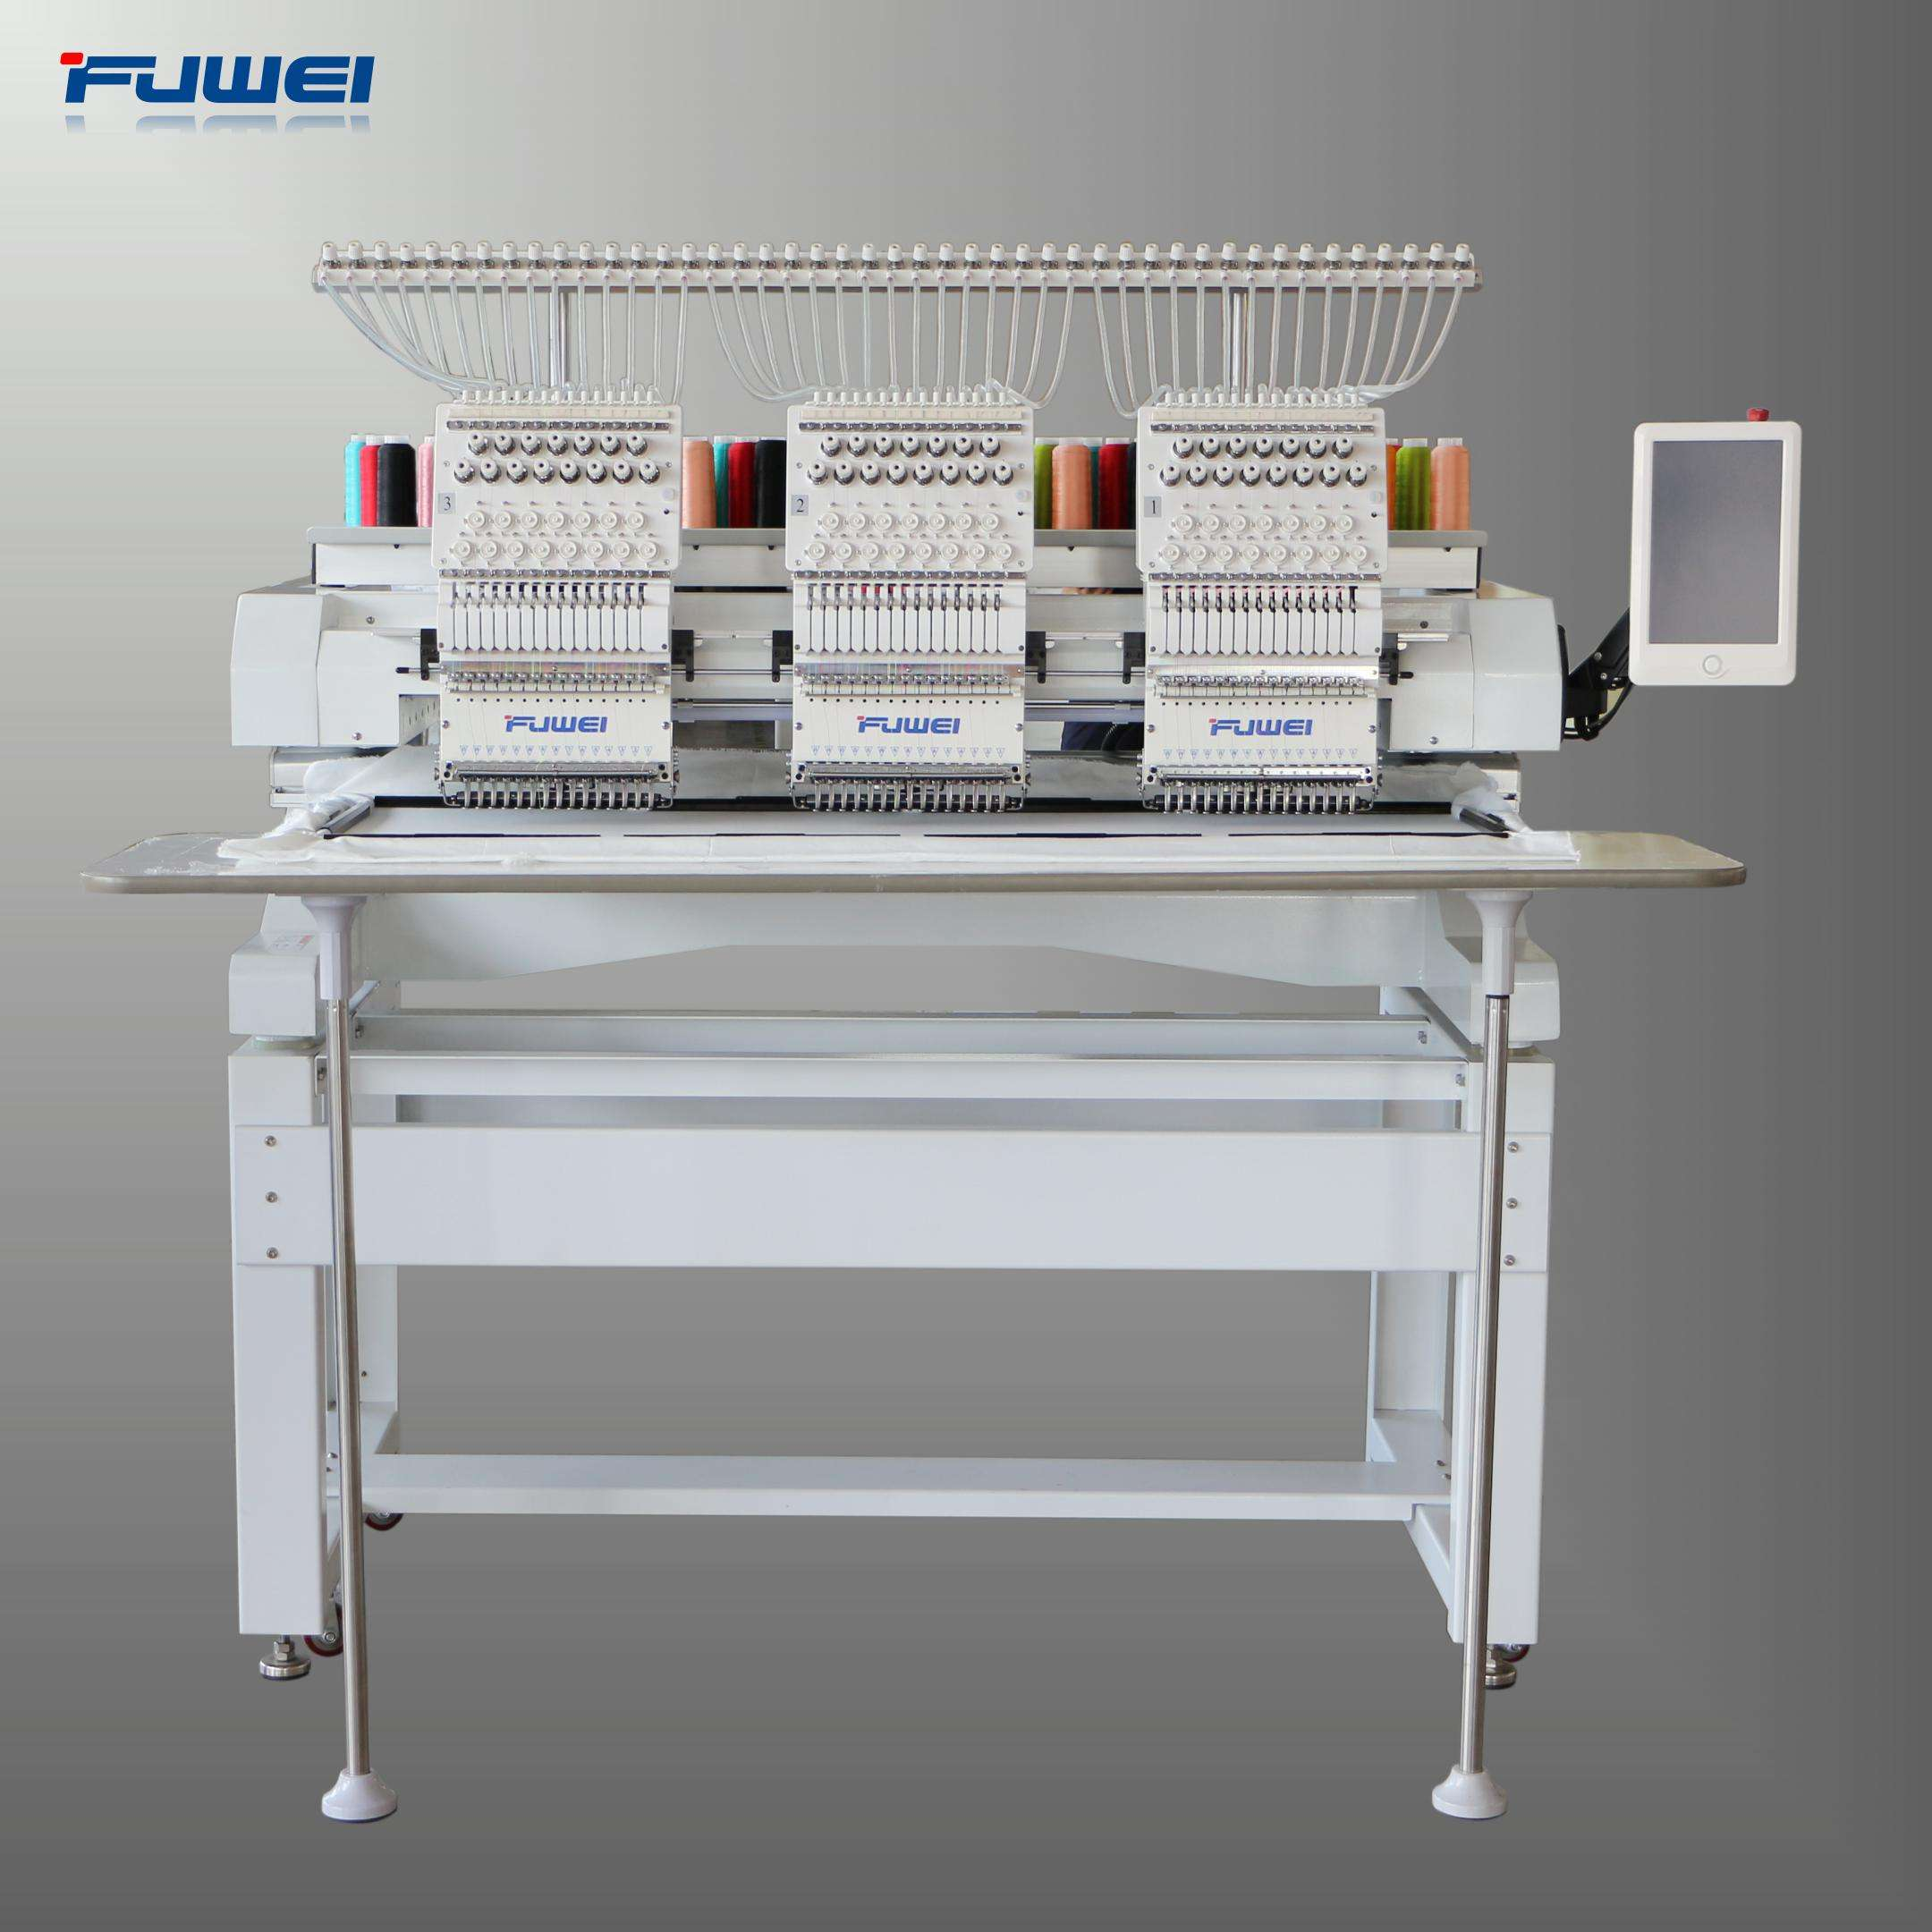 fuwei 2020 model new 3 heads embroidery machines ,ulti heads embroidery machine as tajima type